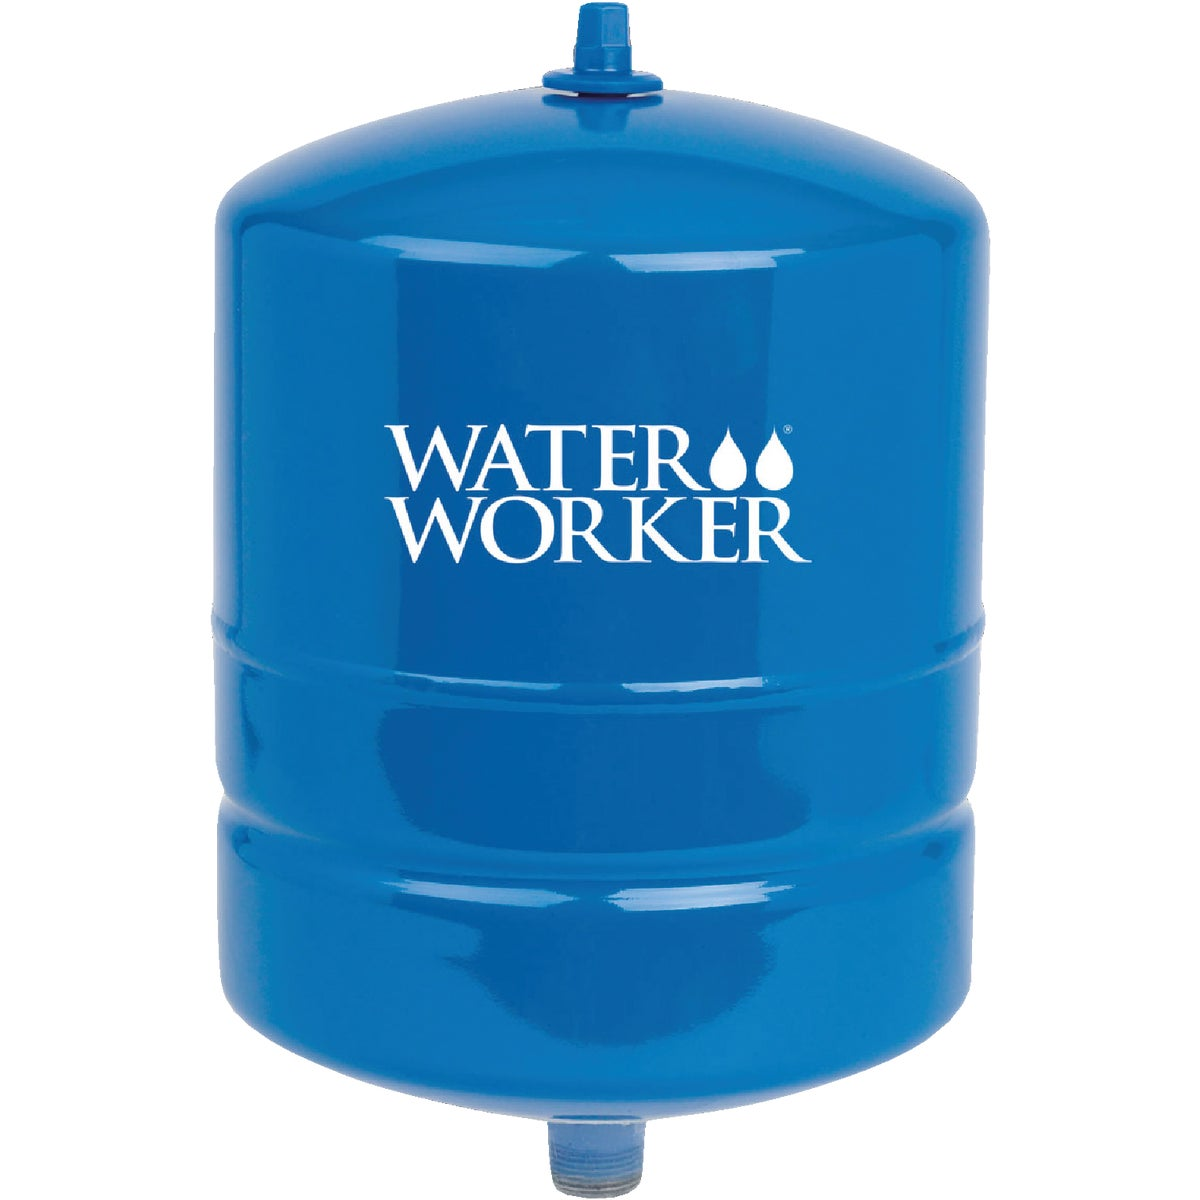 4.4GL JET PUMP WELL TANK - HT-4B by Water Worker